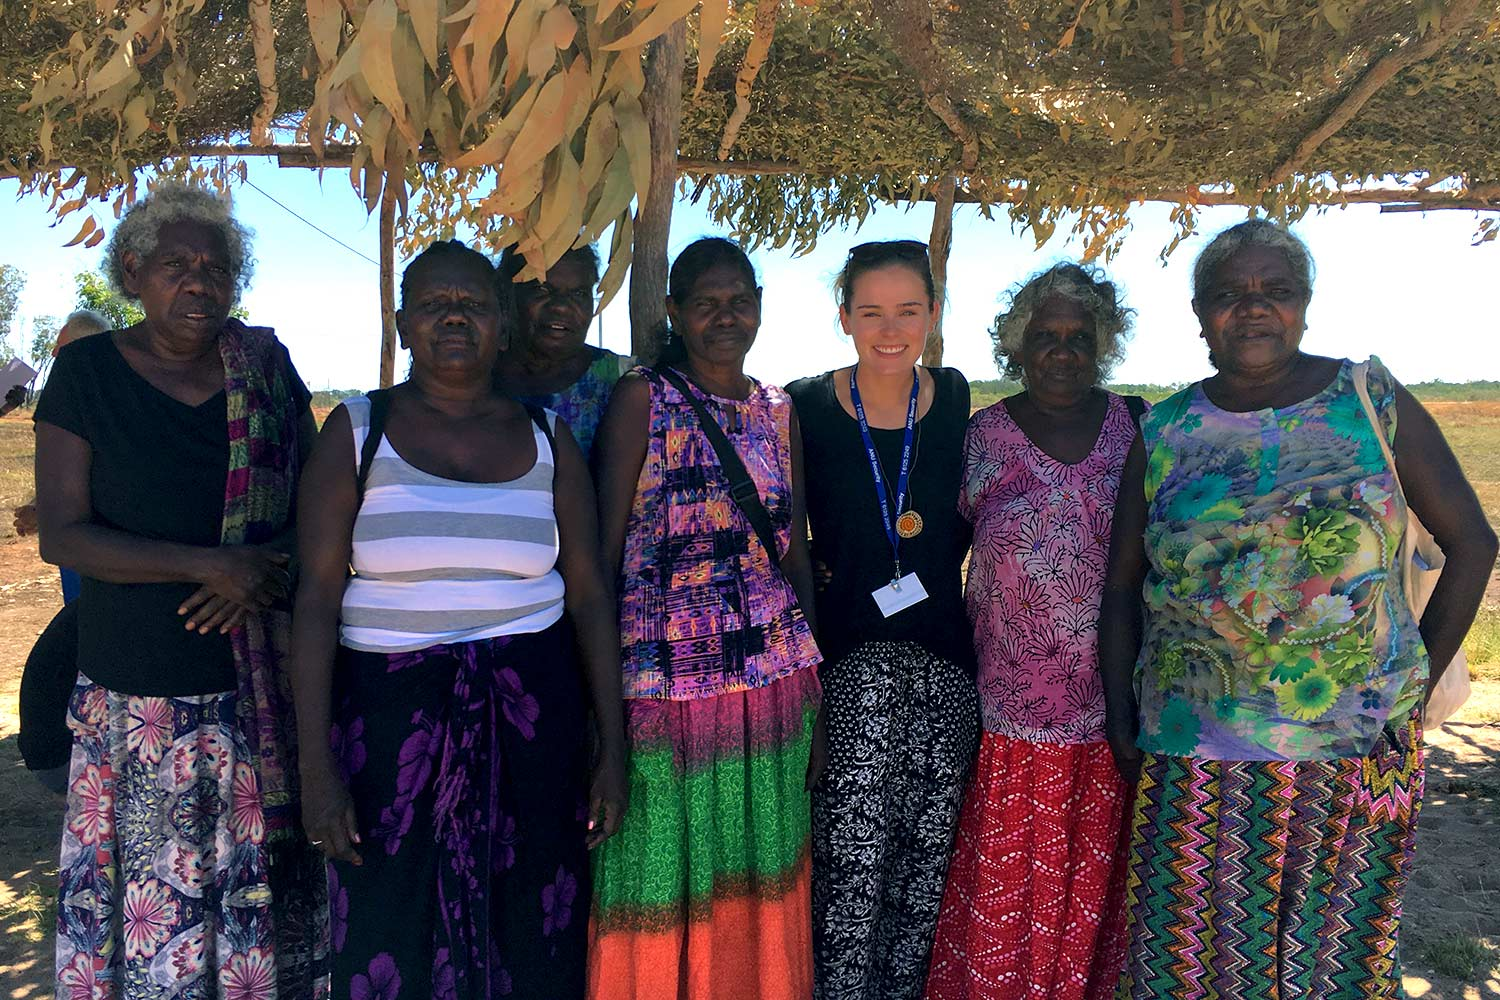 Sydney Collins, third from right, with members of the Milingimbi community during the Makarrata. (Photo courtesy of Margo Smith).